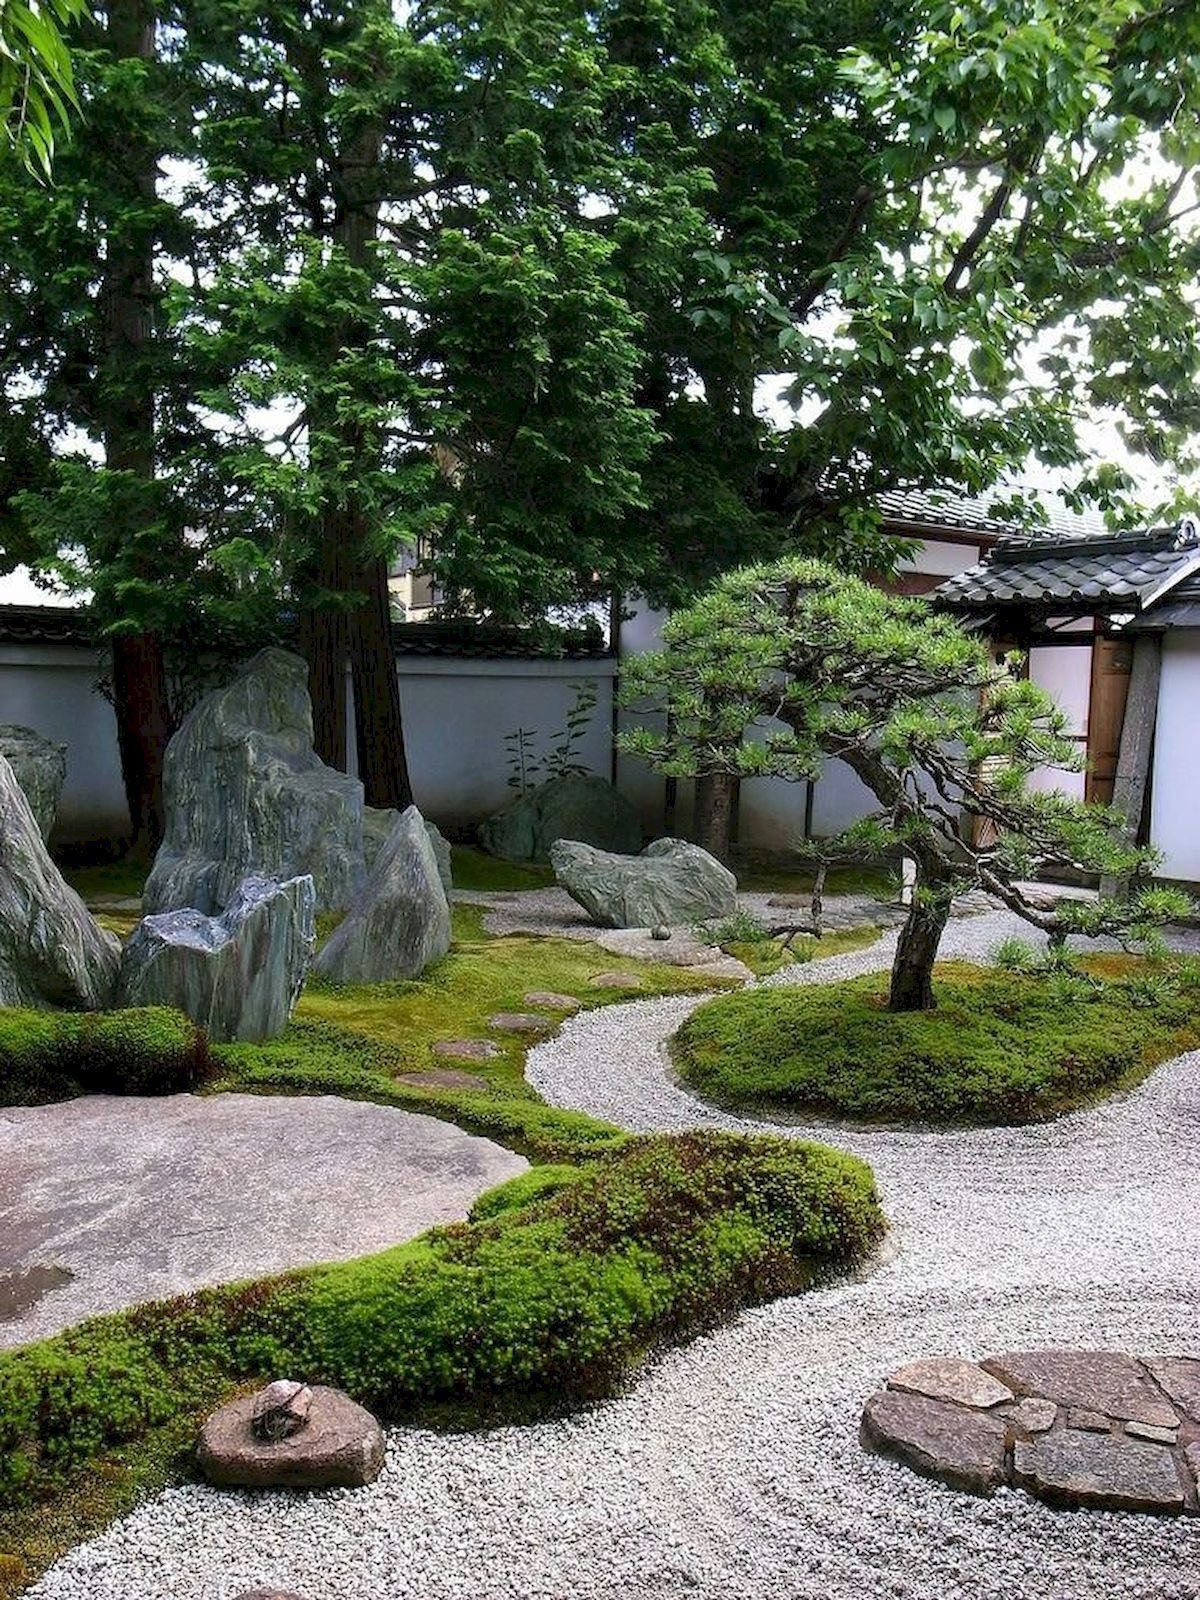 Incredible Japanese Garden Ideas Australia Just On Kennys Landscaping Design Small Japanese Garden Zen Garden Design Japanese Garden Design